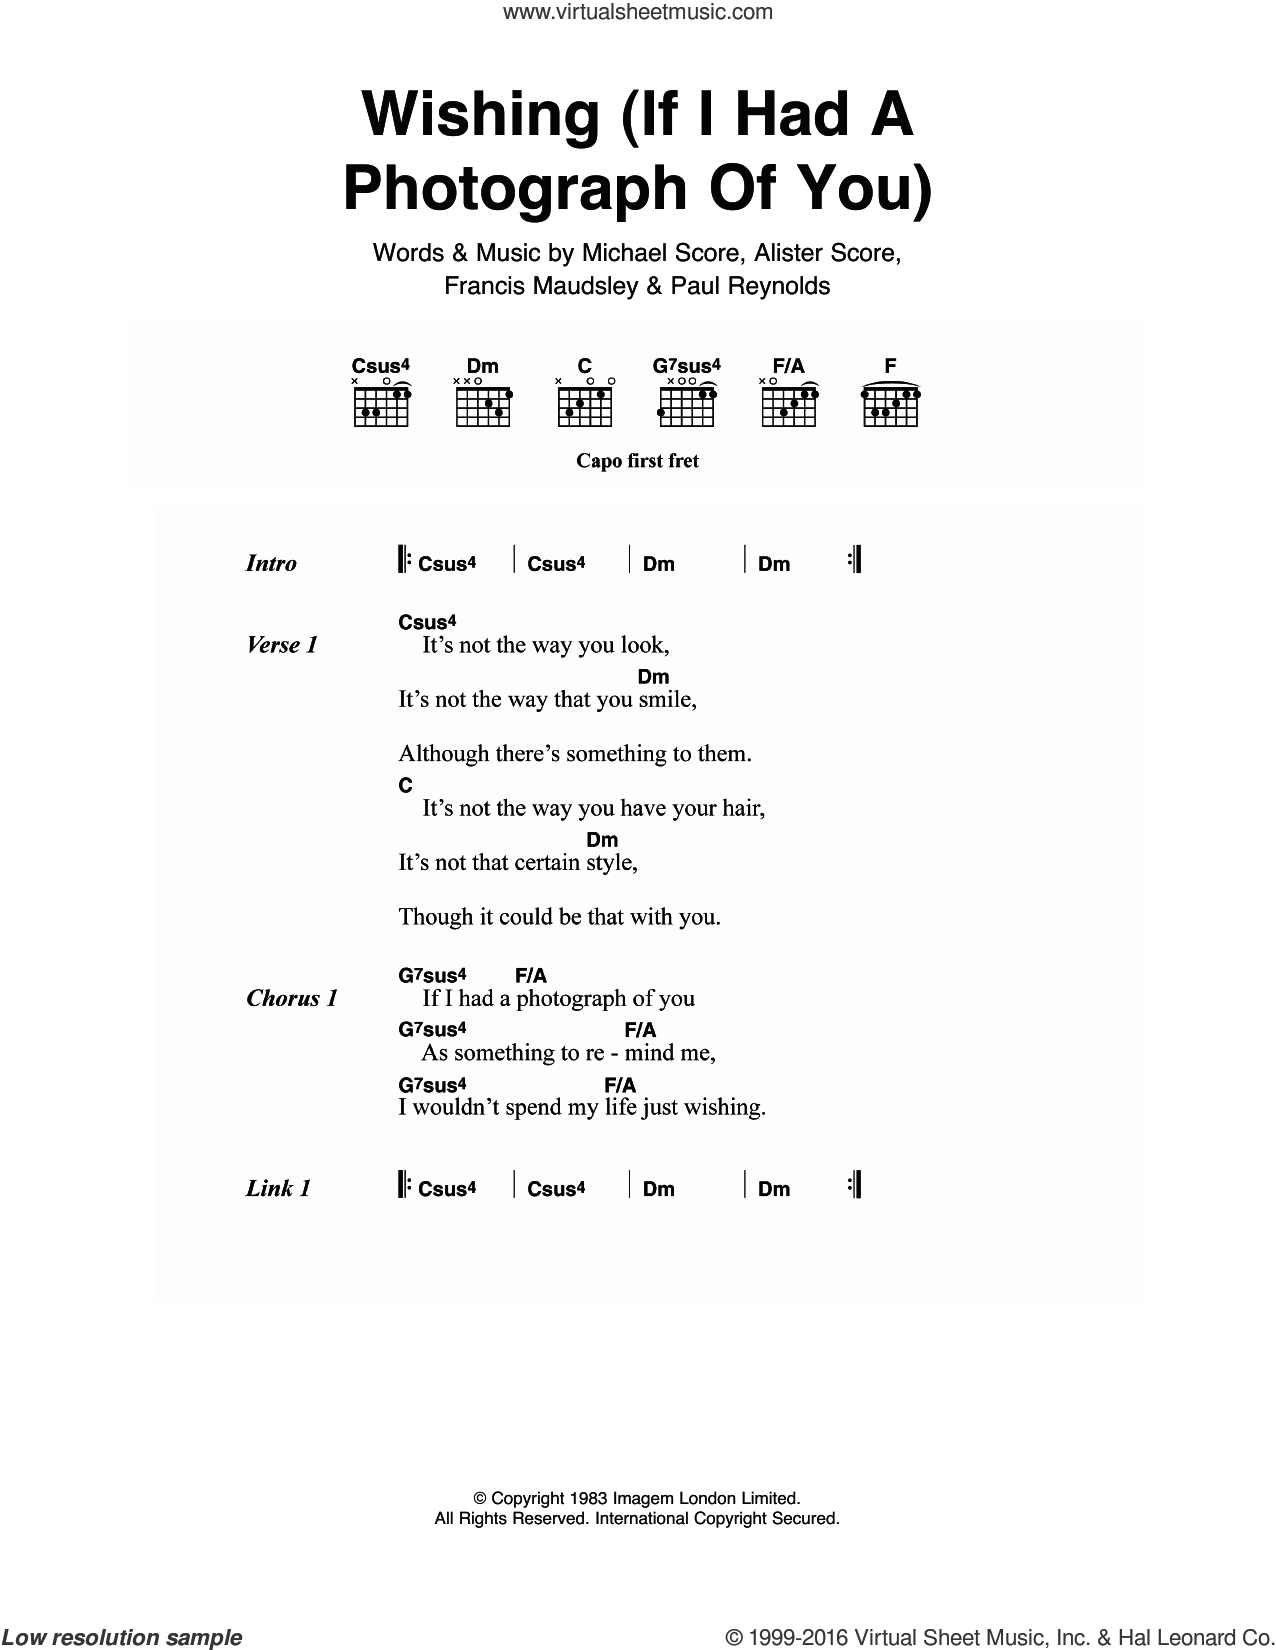 Wishing (If I Had A Photograph Of You) sheet music for guitar (chords) by Paul Reynolds. Score Image Preview.